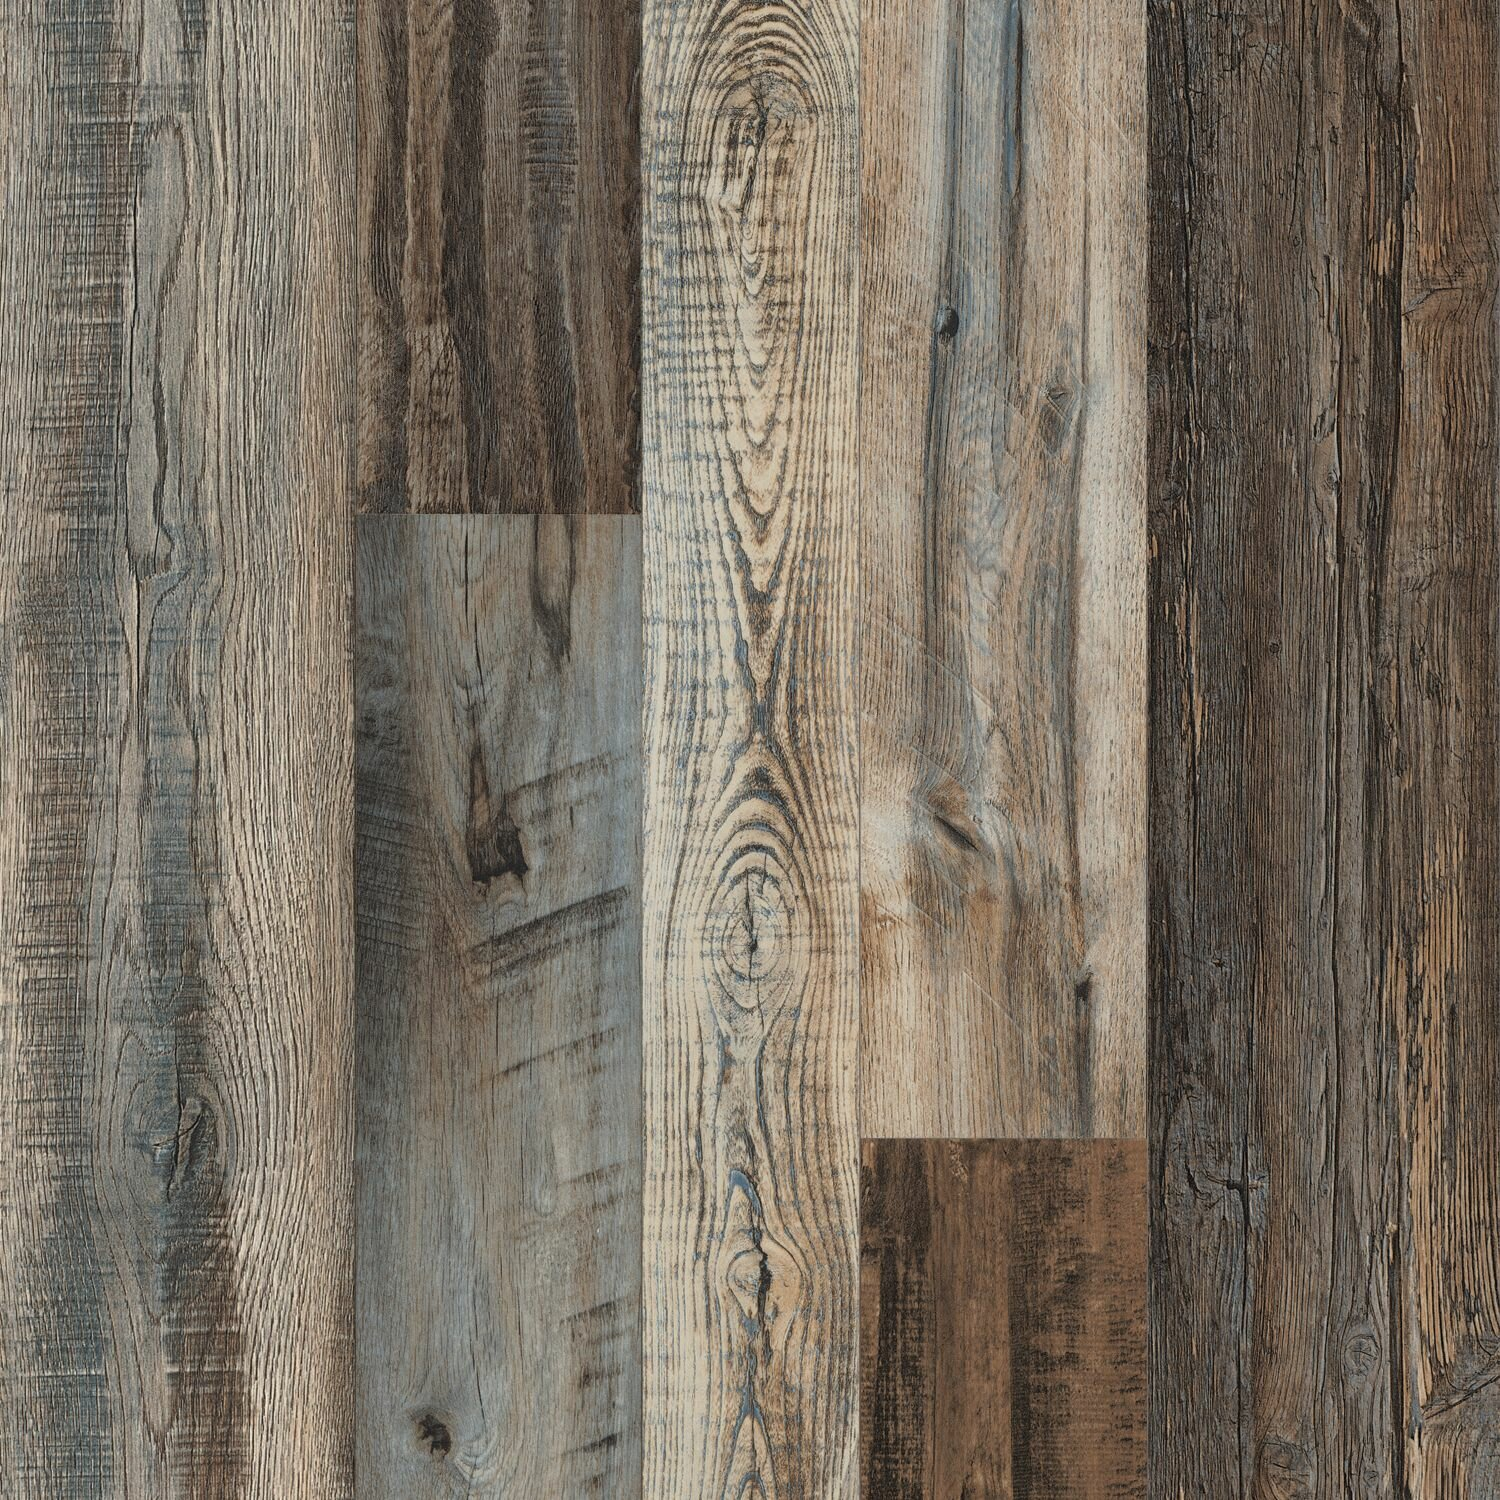 Armstrong Flooring Pryzm Elements Of Heritage 4 3 X 47 6 X 6 5mm